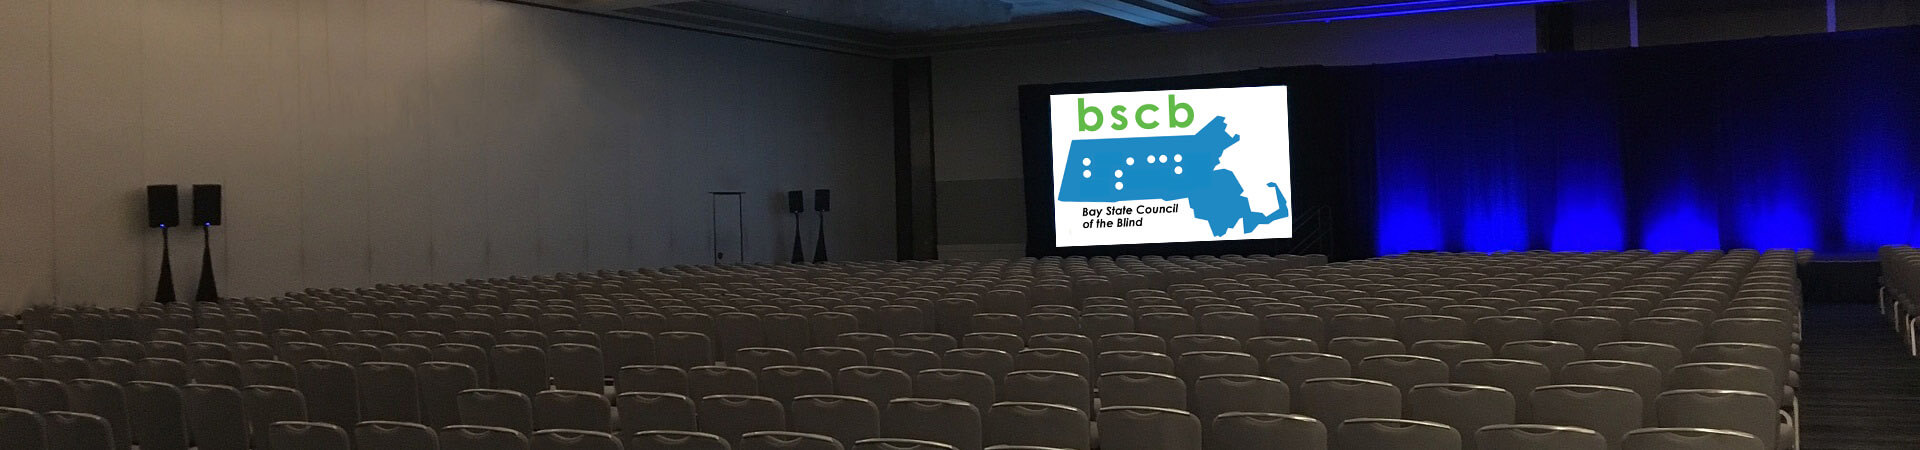 A large auditorium has a BSCB logo projected on the screen by the stage.